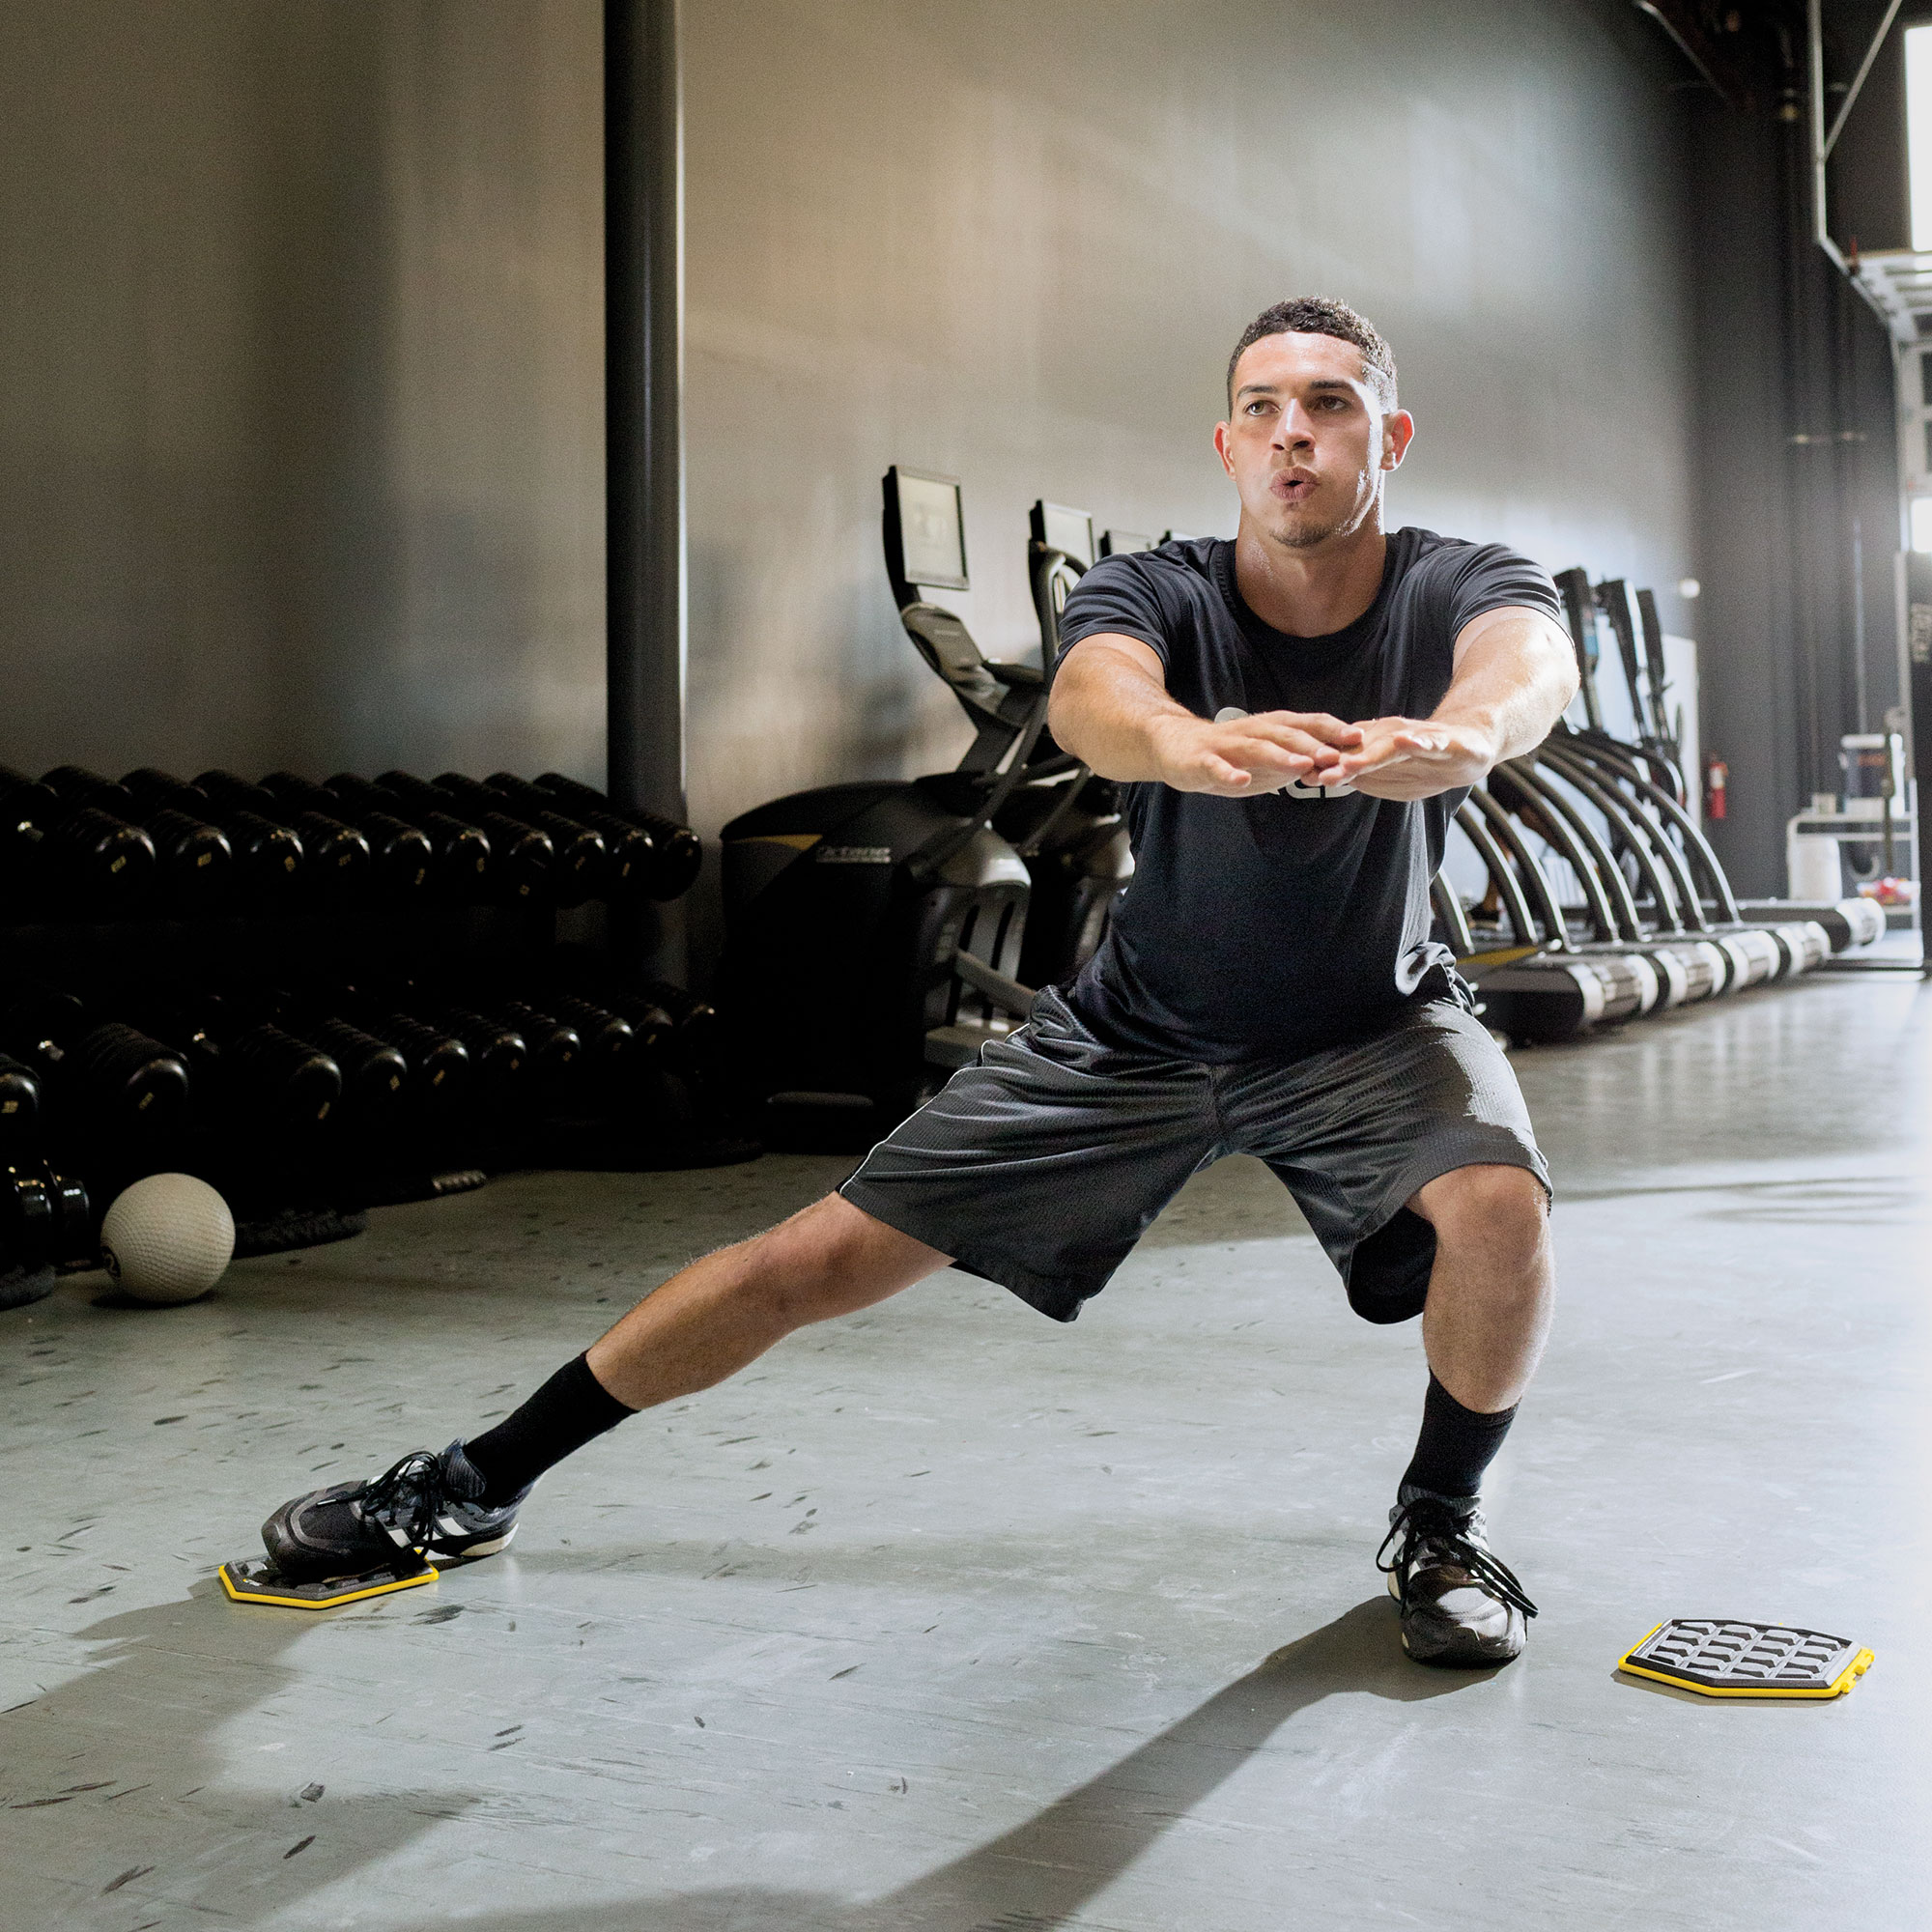 STRONG TO THE CORE Built to work both upper and lower body, Slidez engages core muscles through a nearly endless range of motion and training drills. Designed for use with both hands and feet, and to add new muscle, stamina and flexibility.